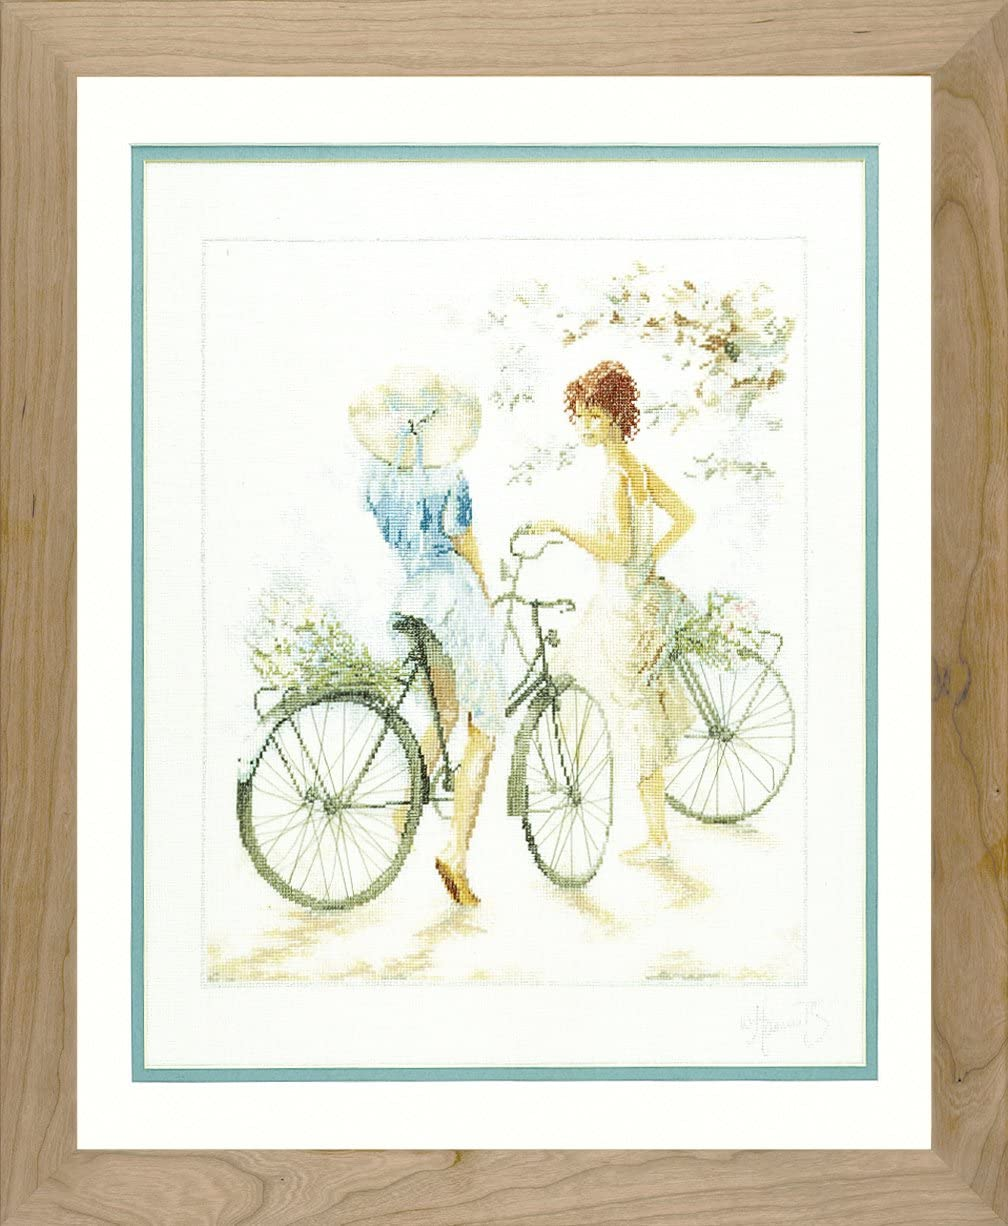 Lanarte Be Deluxe super welcome Vervaco PN-0007949 Bicycles Stit Cross Picture Counted